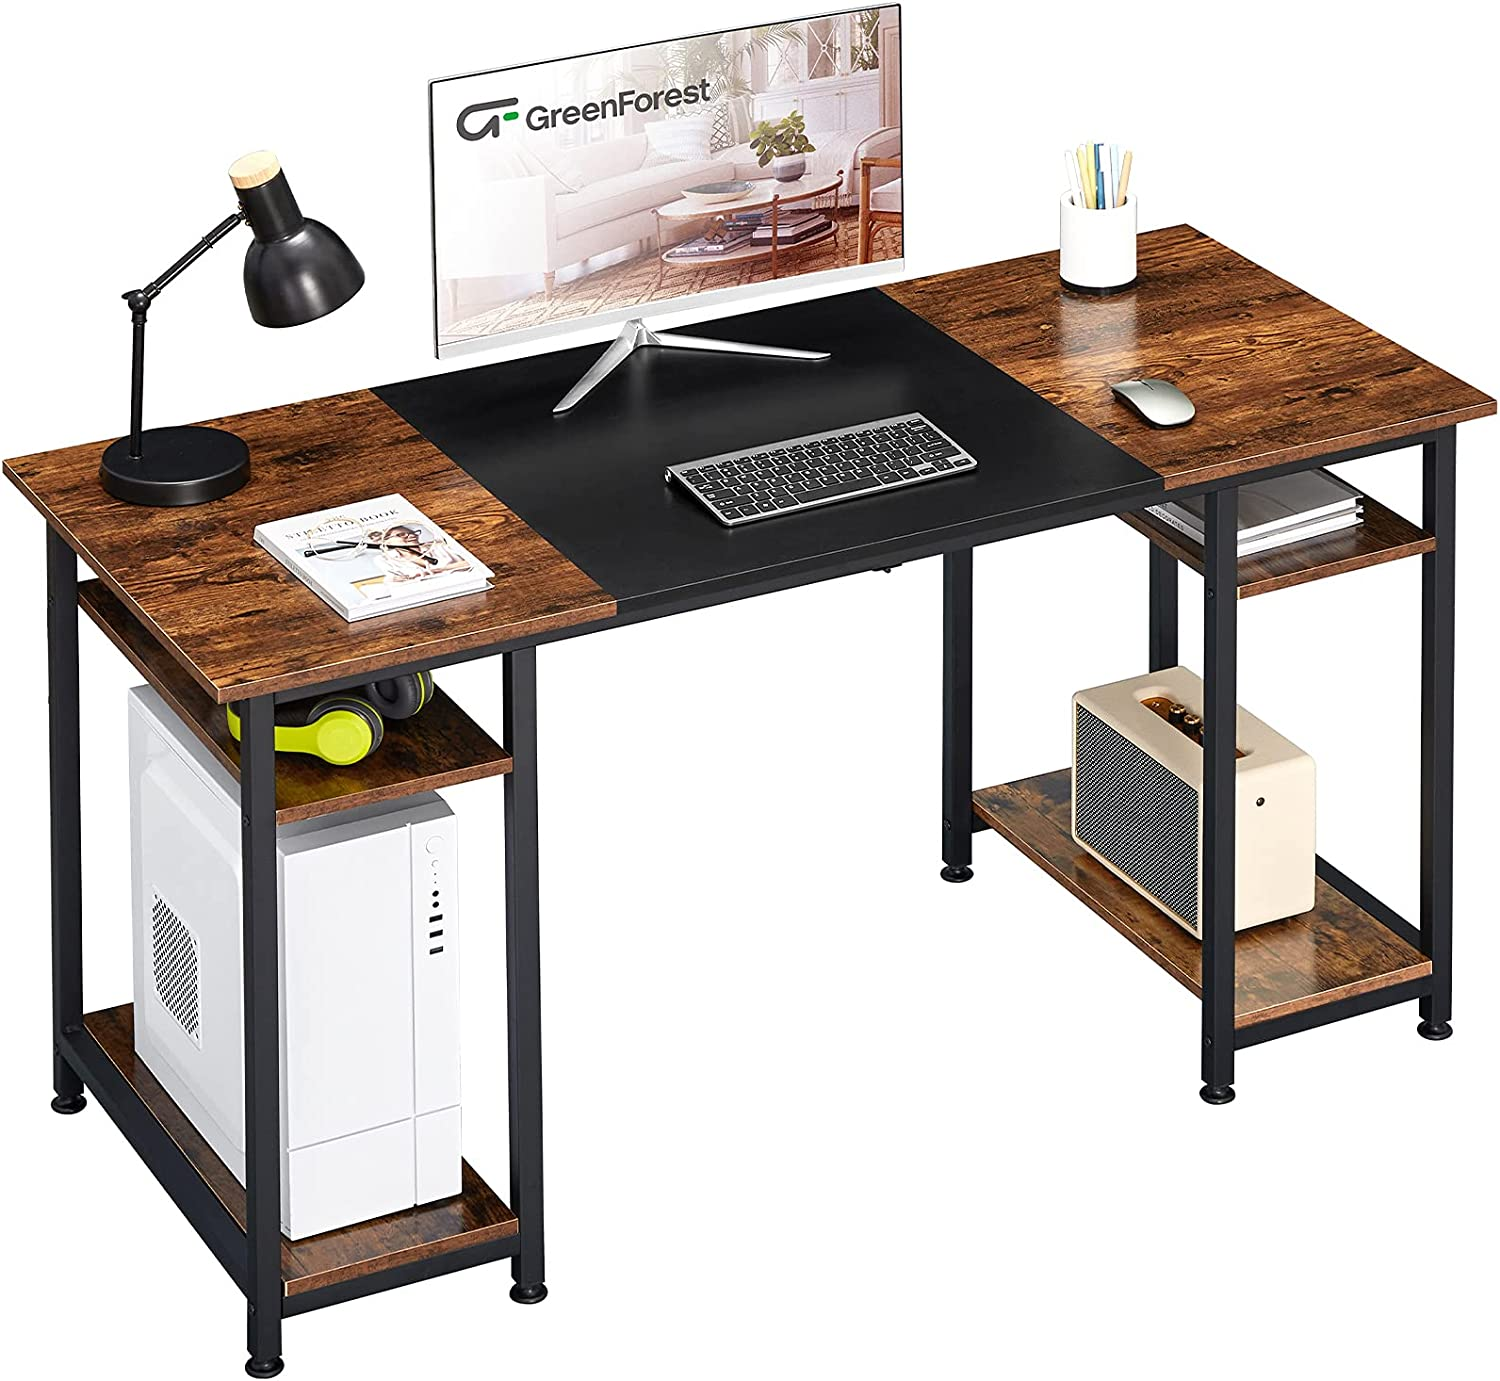 GreenForest Computer Desk SEAL limited product 70% OFF Outlet 55 inch Moder Shelves Office with